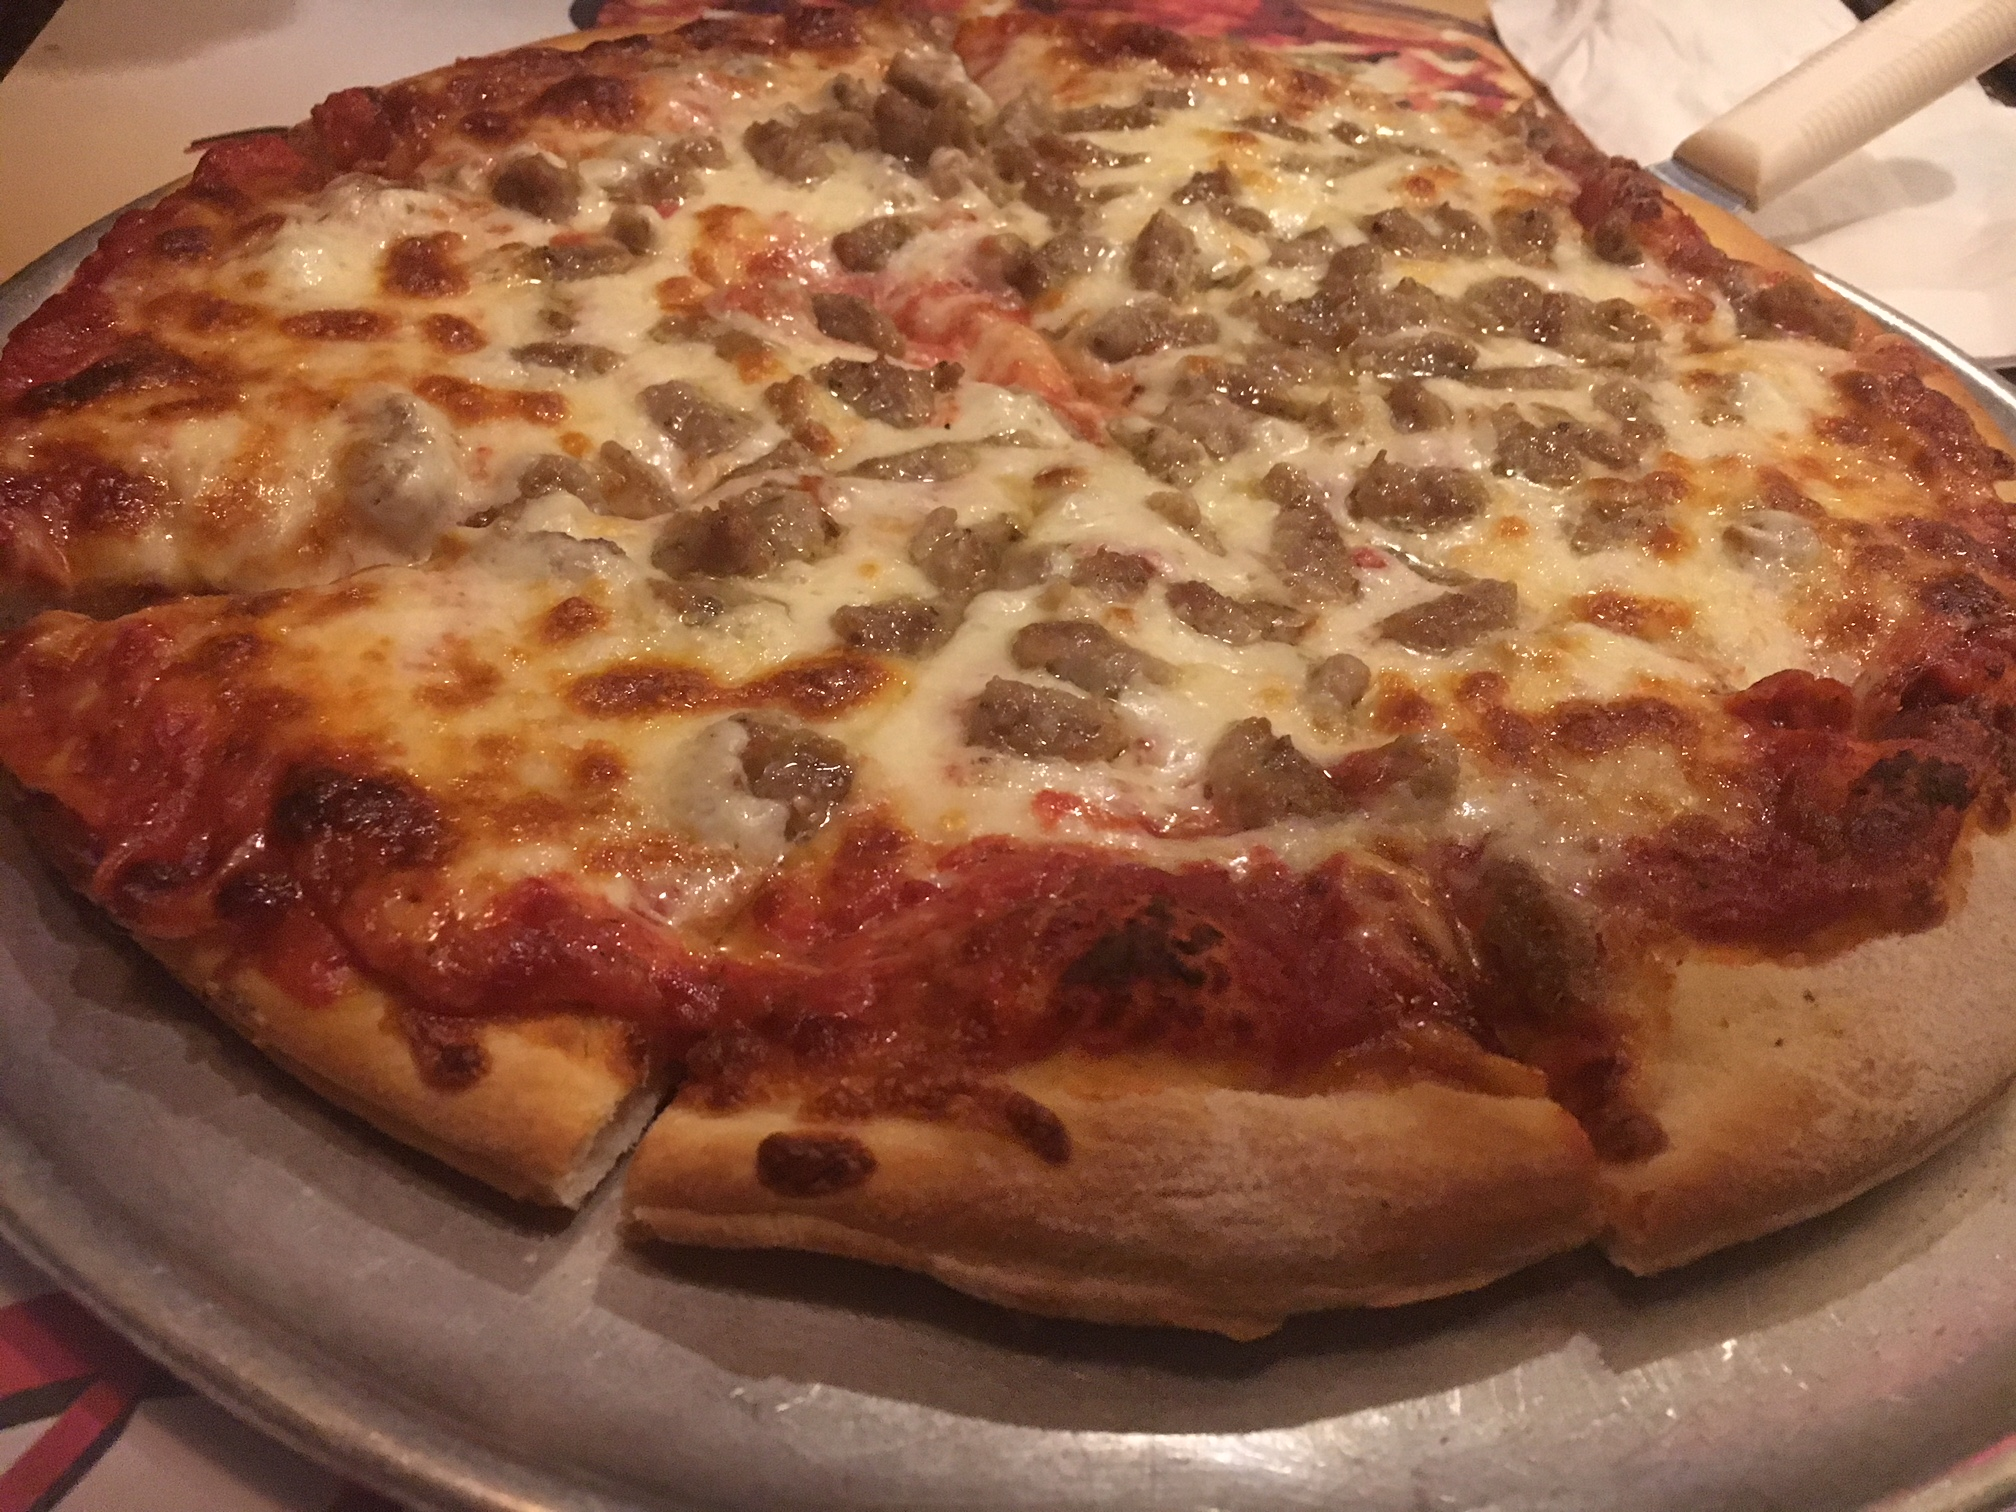 the DeLuca's sausage pie